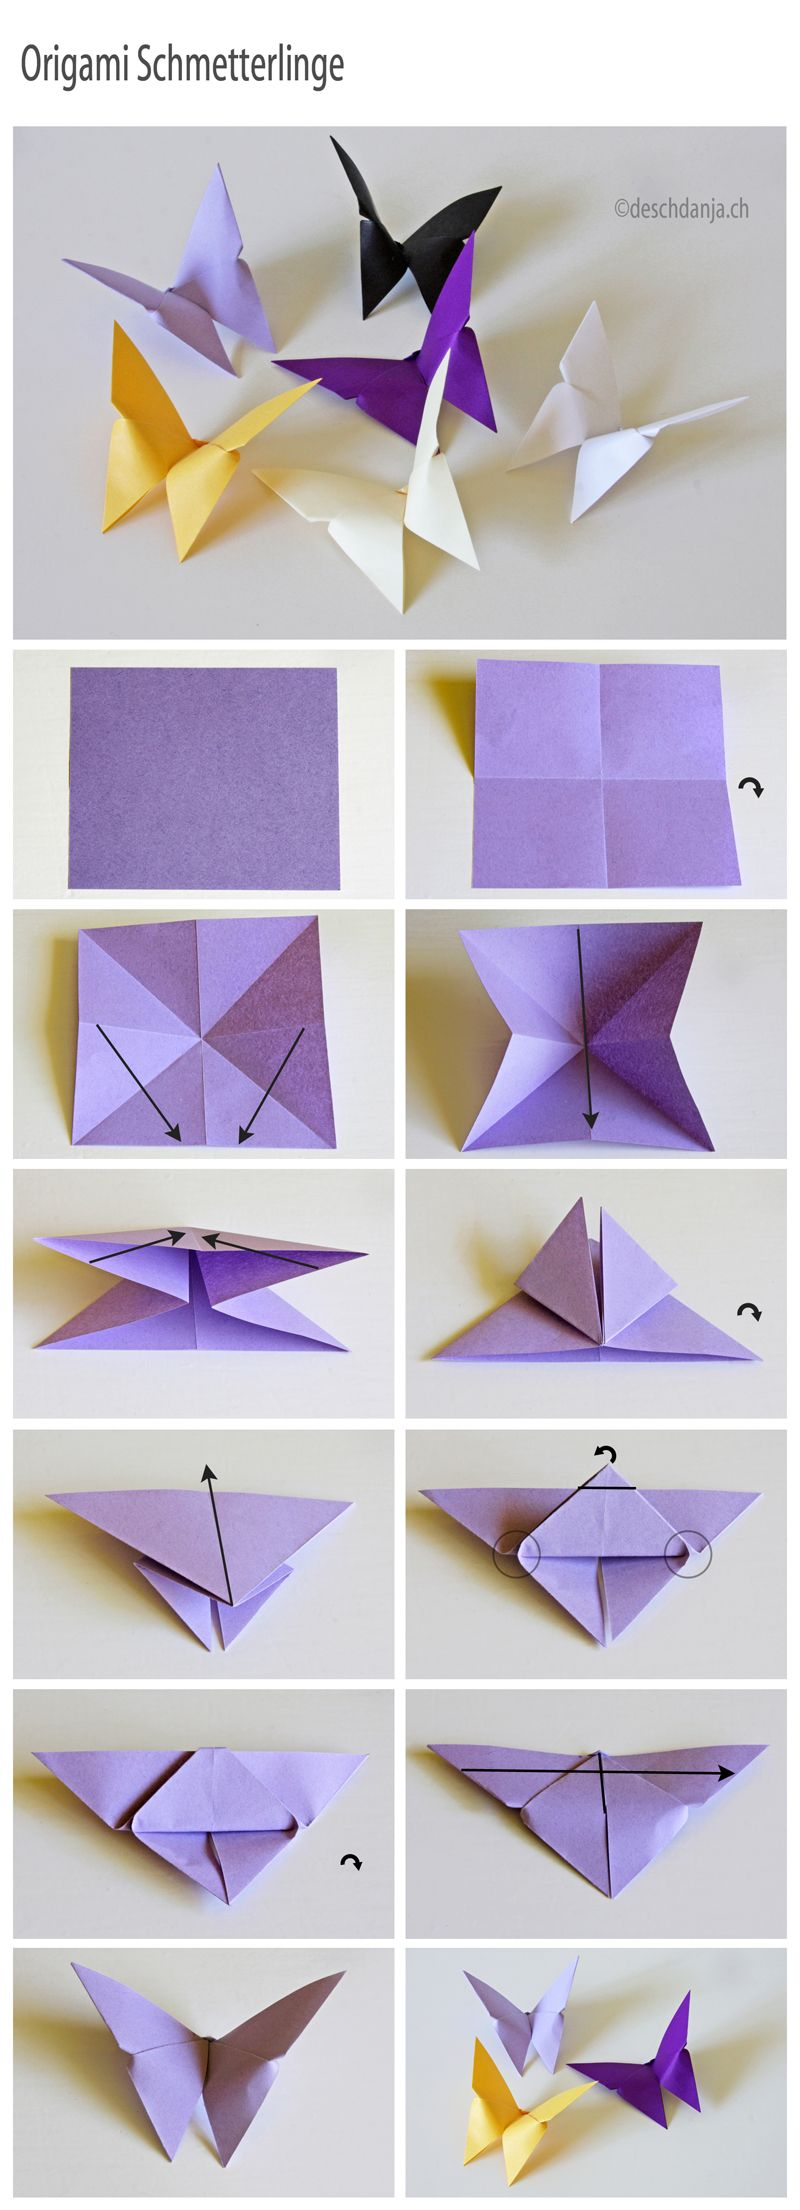 Uncategorized Craft Ideas Step By Step easy paper craft projects you can make with kids for kids